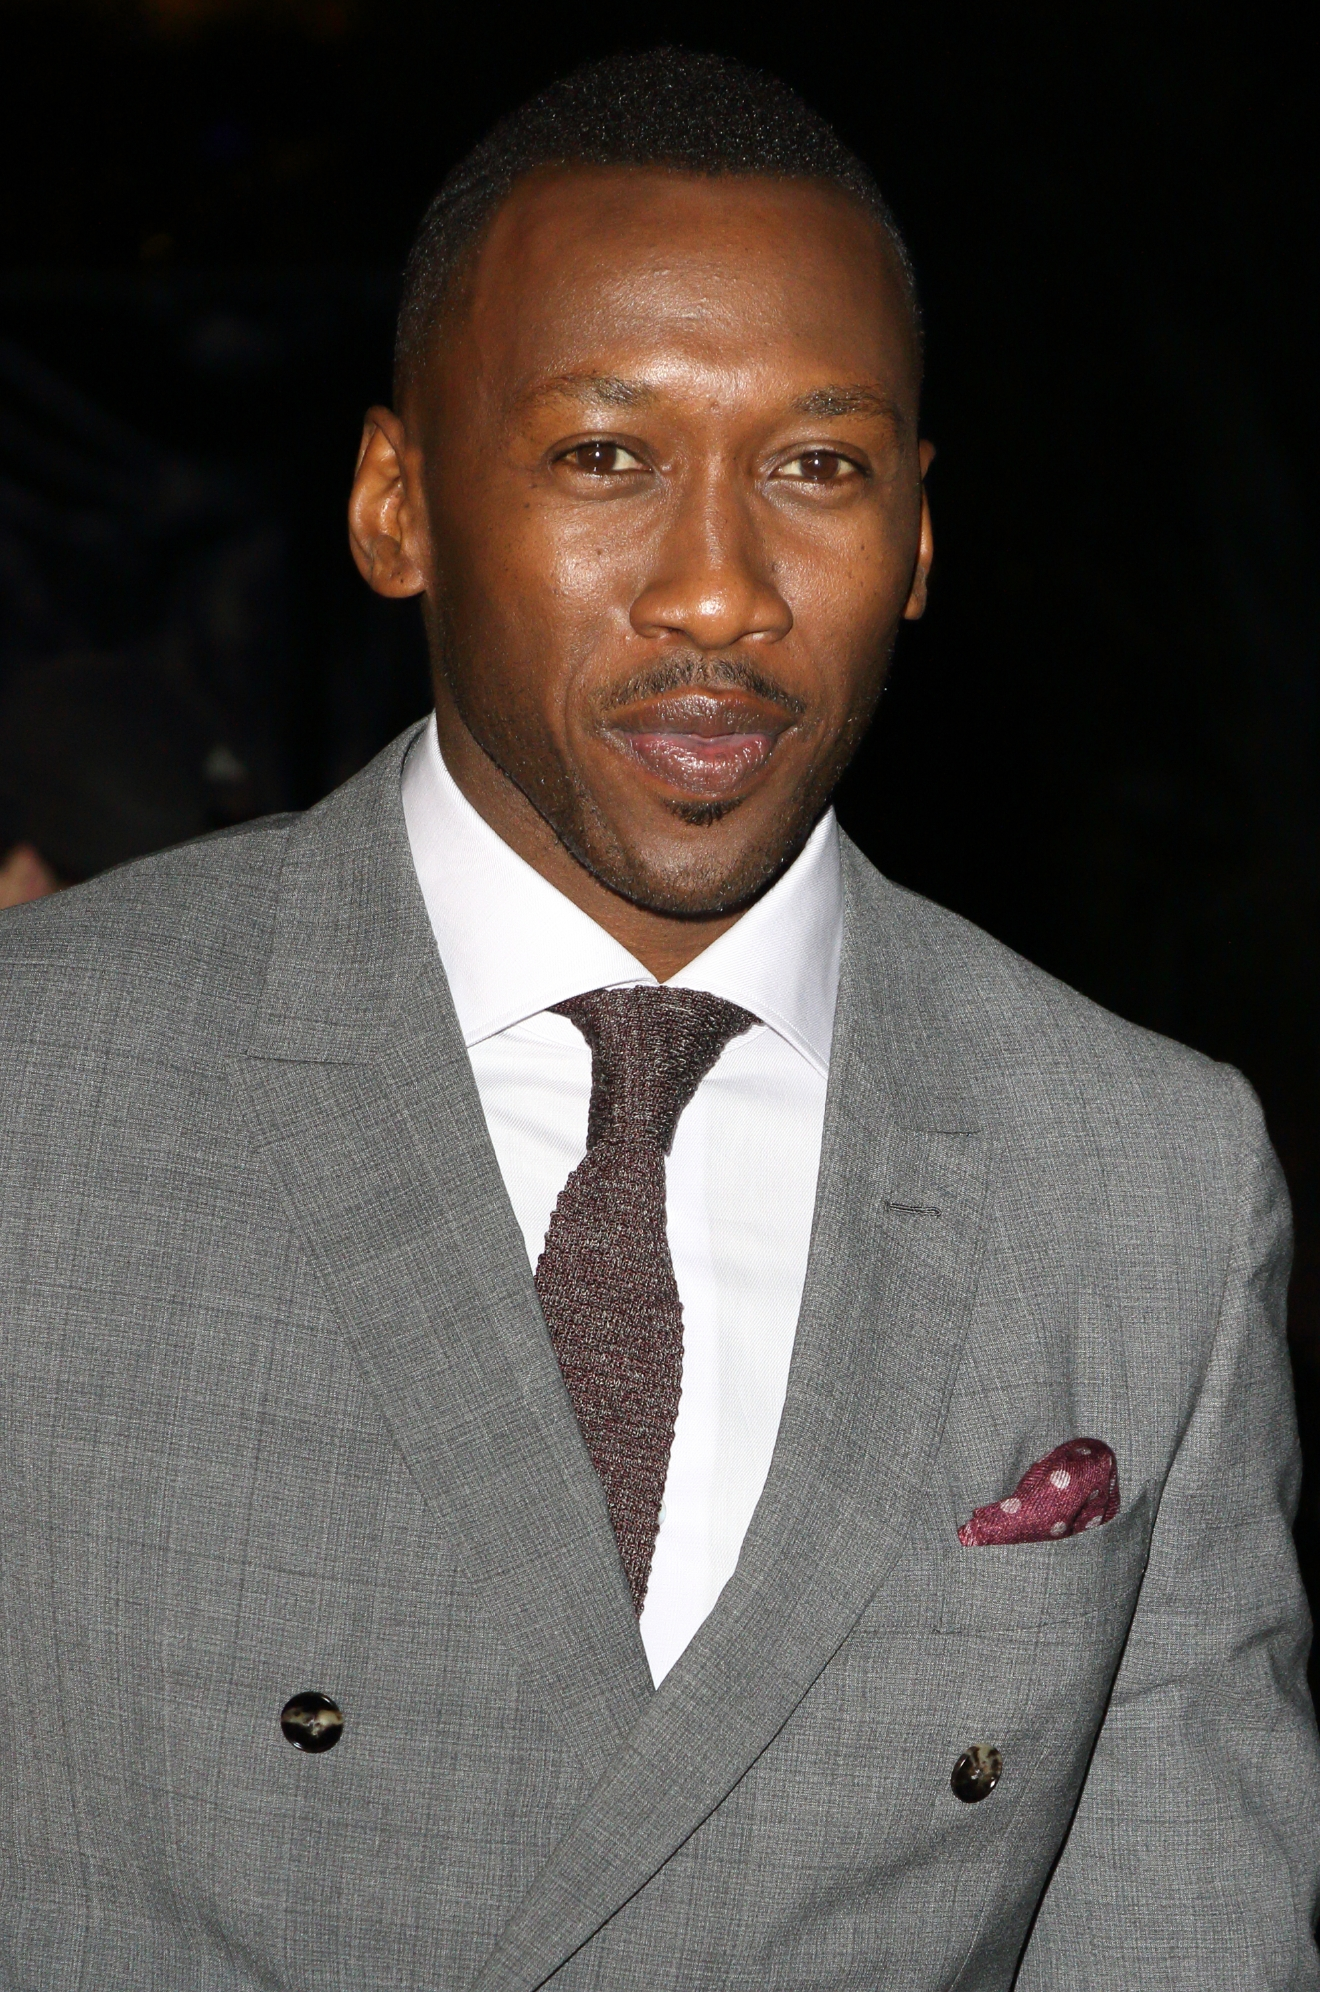 "Though he didn't win the Golden Globe, Mahershala Ali is still the front-runner for his scene-stealing role in ""Moonlight. He plays Juan, a drug dealer who becomes the unlikely mentor for a young black man struggling to navigate his sexuality amid school bullies and his addict mother. Despite his conflicting occupation, Juan is the film's most endearing character – strong, gentle and protective. Any faults are overlooked by his compassion and warm-hearted guidance for a directionless boy. (Image: WENN.com)"